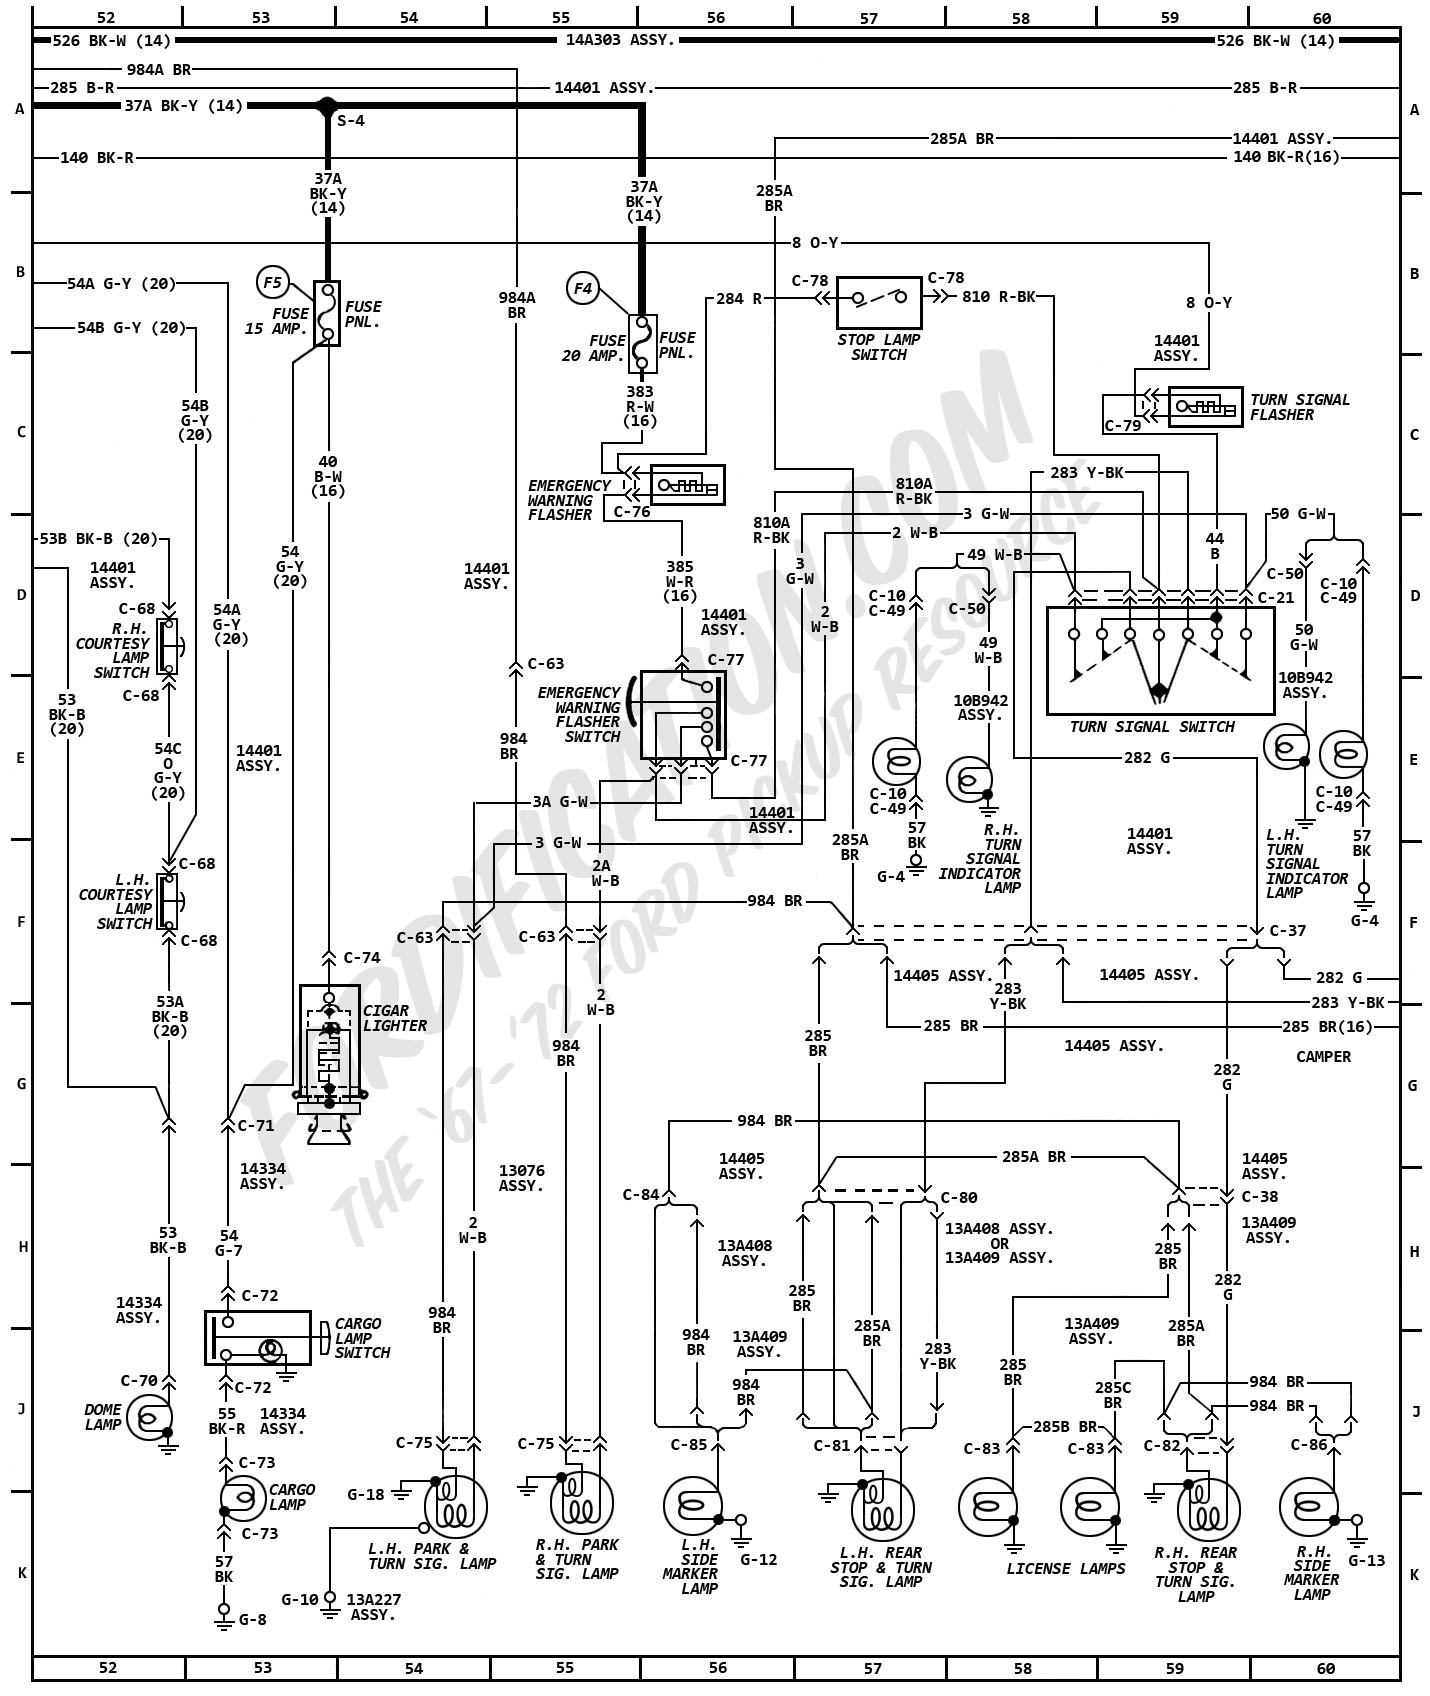 Steering Suspension Diagrams likewise 1959 Ford Steering Column Wiring Diagram as well Routing Wires Trifive 1955 Chevy 1956 1957 Forum Talk 55 also Wiring 1972master also Neutral Safety Switch Wiring Diagram Chevy. on 56 chevy steering column diagram